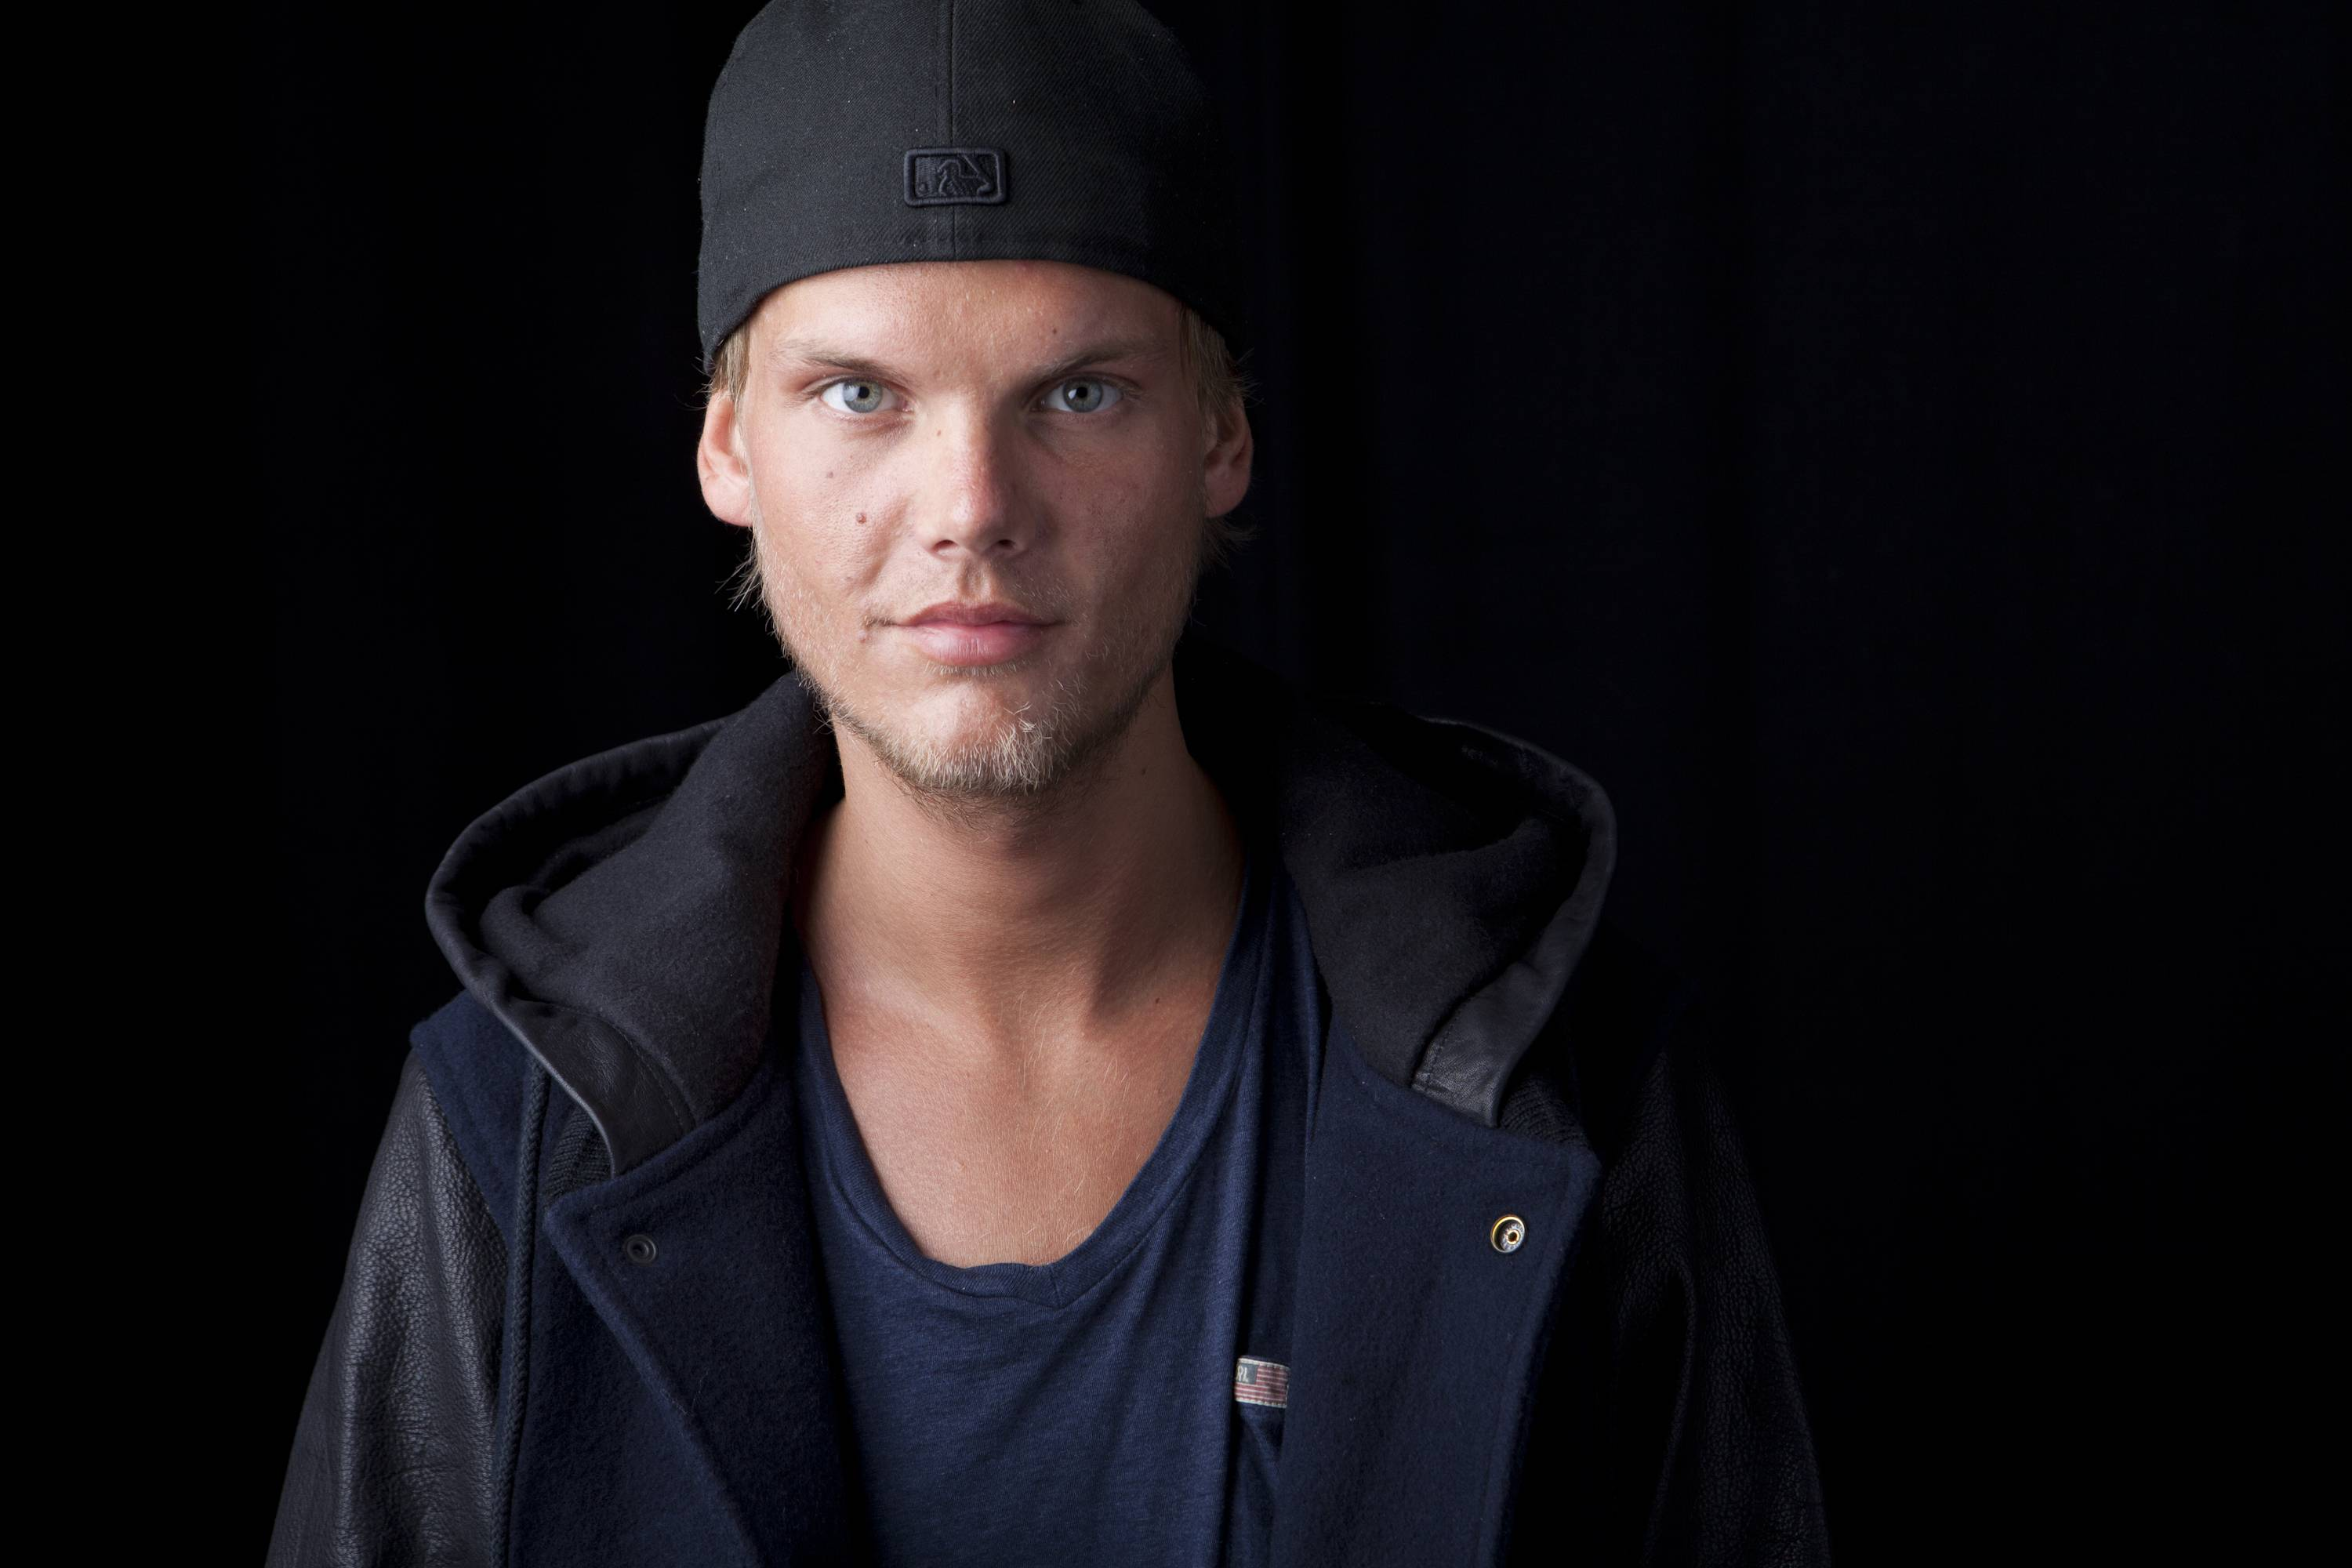 Many people who attended an electronic dance music show featuring Swedish disc jockey Avicii at the TD Garden arena on Wednesday showed up intoxicated and several were hospitalized, authorities said.